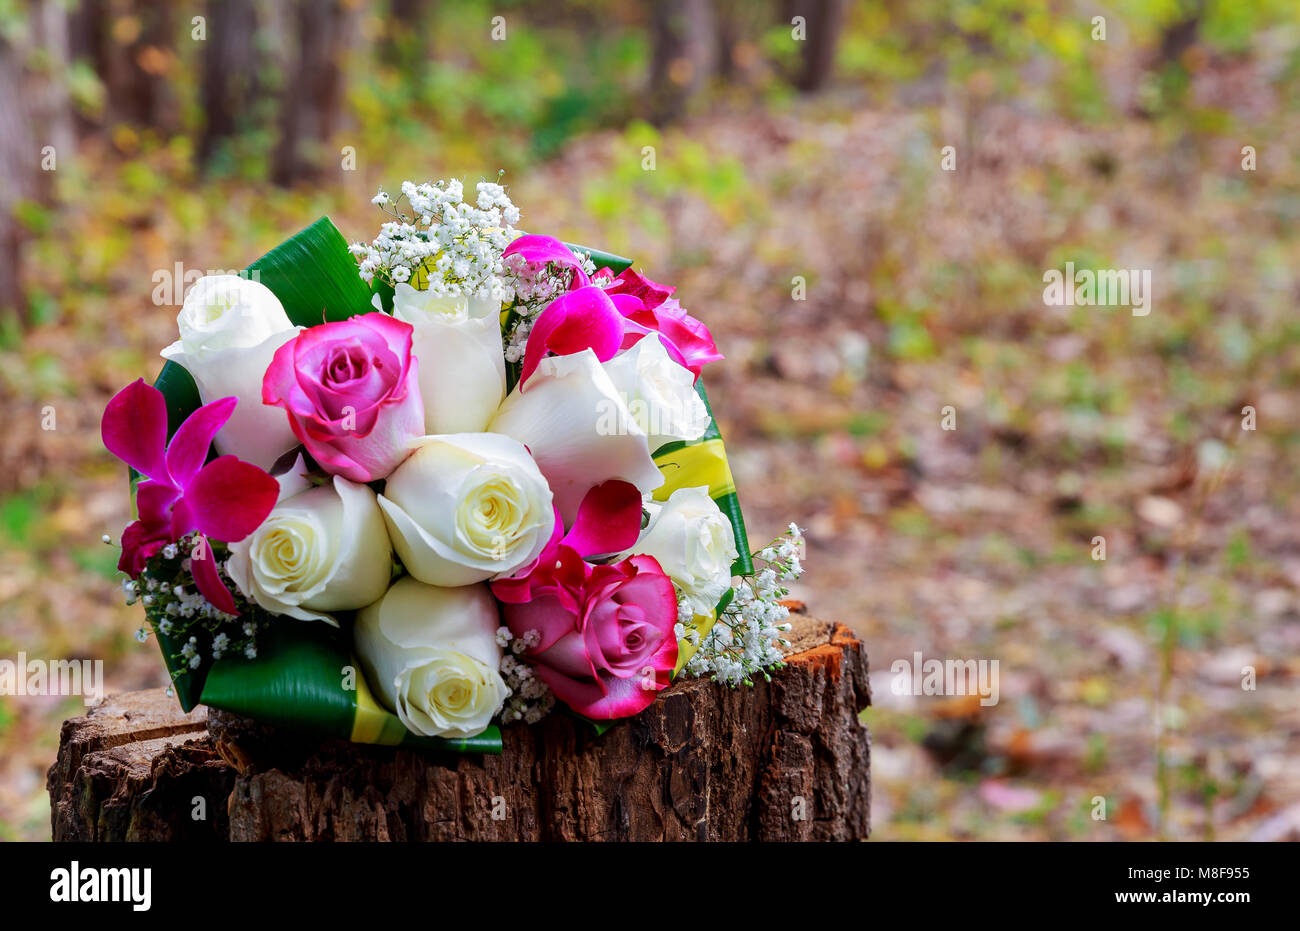 Wedding Bridal Bouquet With White Orchids Roses Daisies And Red